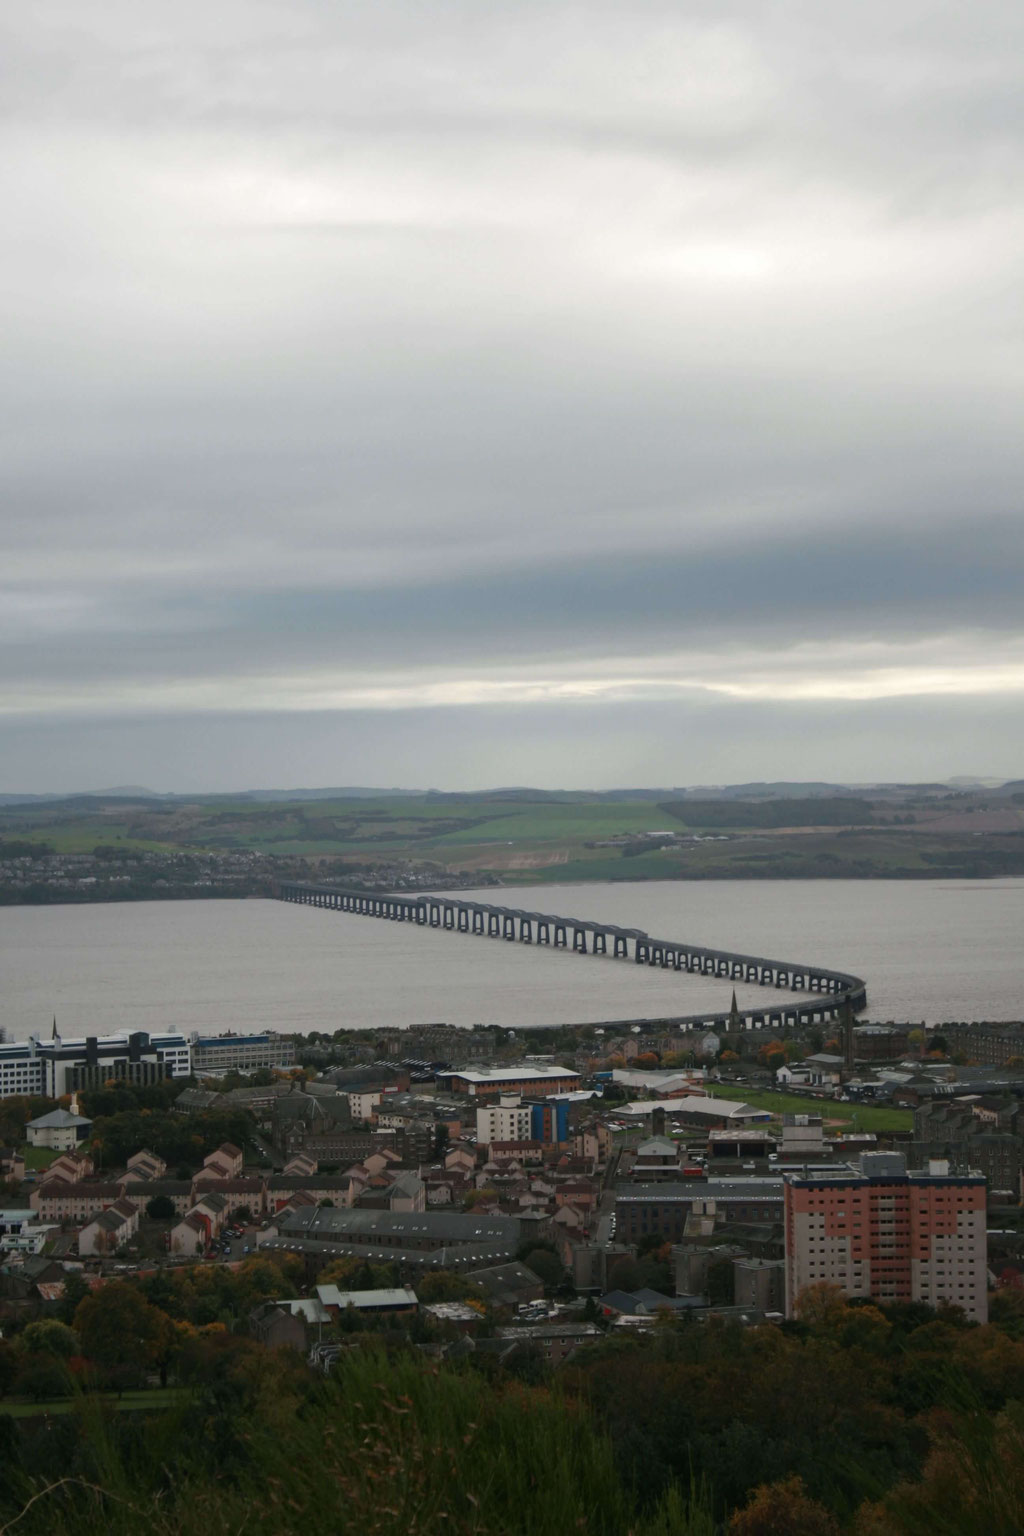 View from Dundee Law Viewpoint